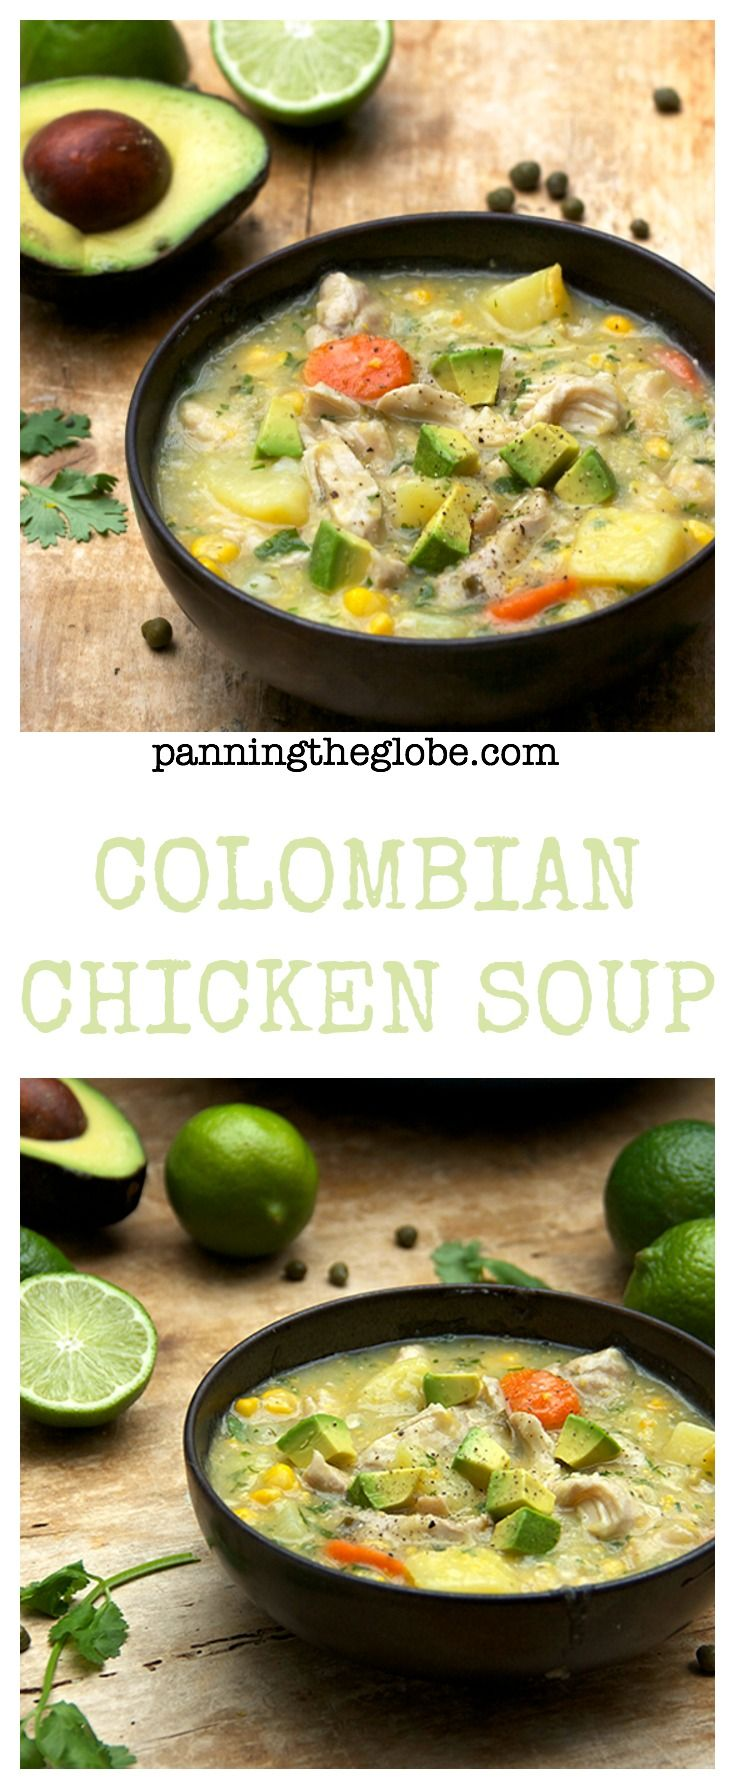 Ajiaco: Colombian Chicken Soup - no cream -  it's thickened with corn and potatoes #CLblogger #GlutenFree #soup